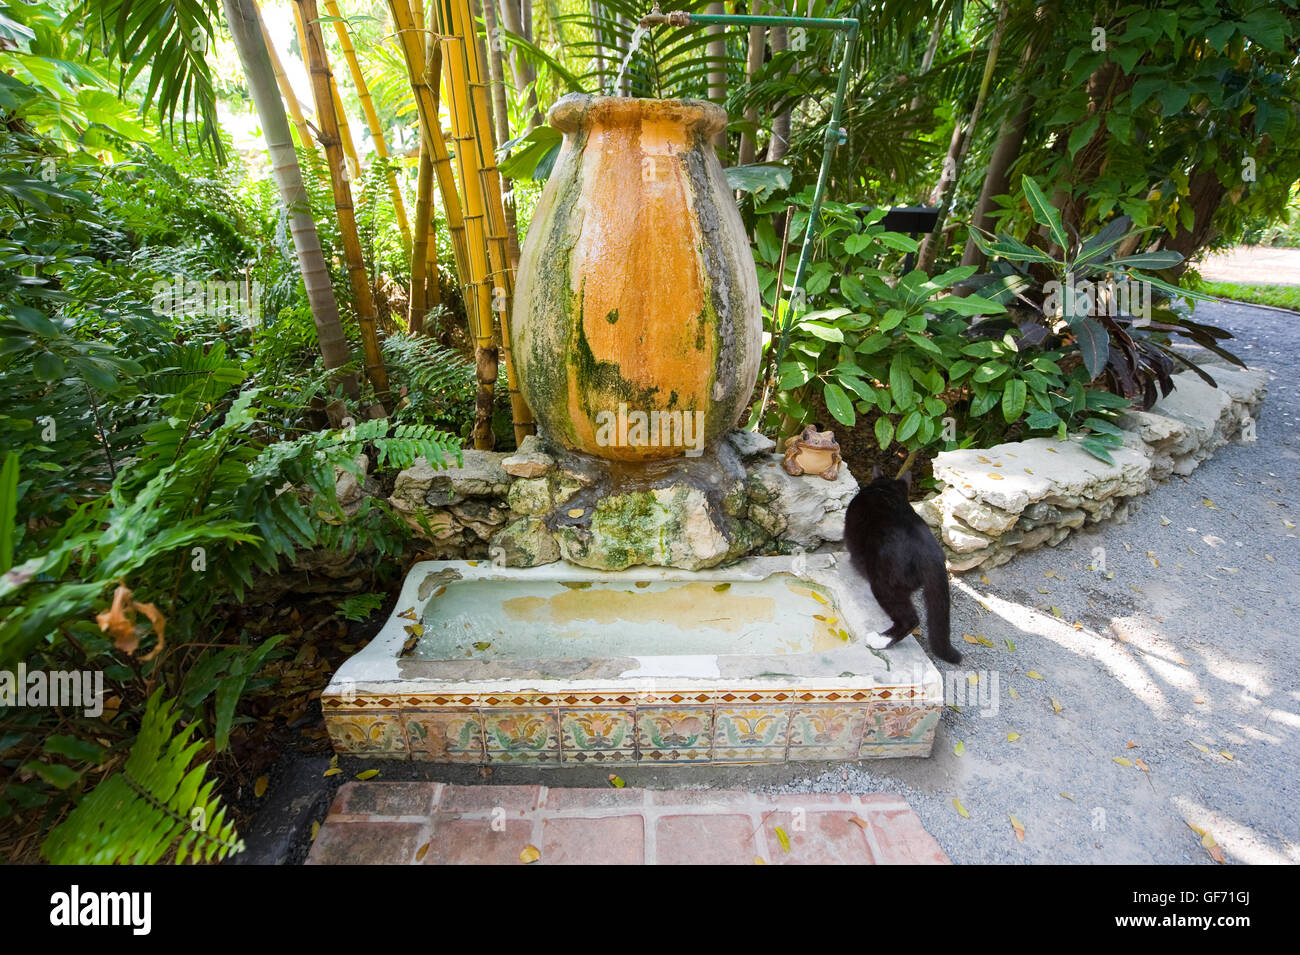 Former Urinal In The Garden Of The Ernest Hemingway House In Key West In  Florida.